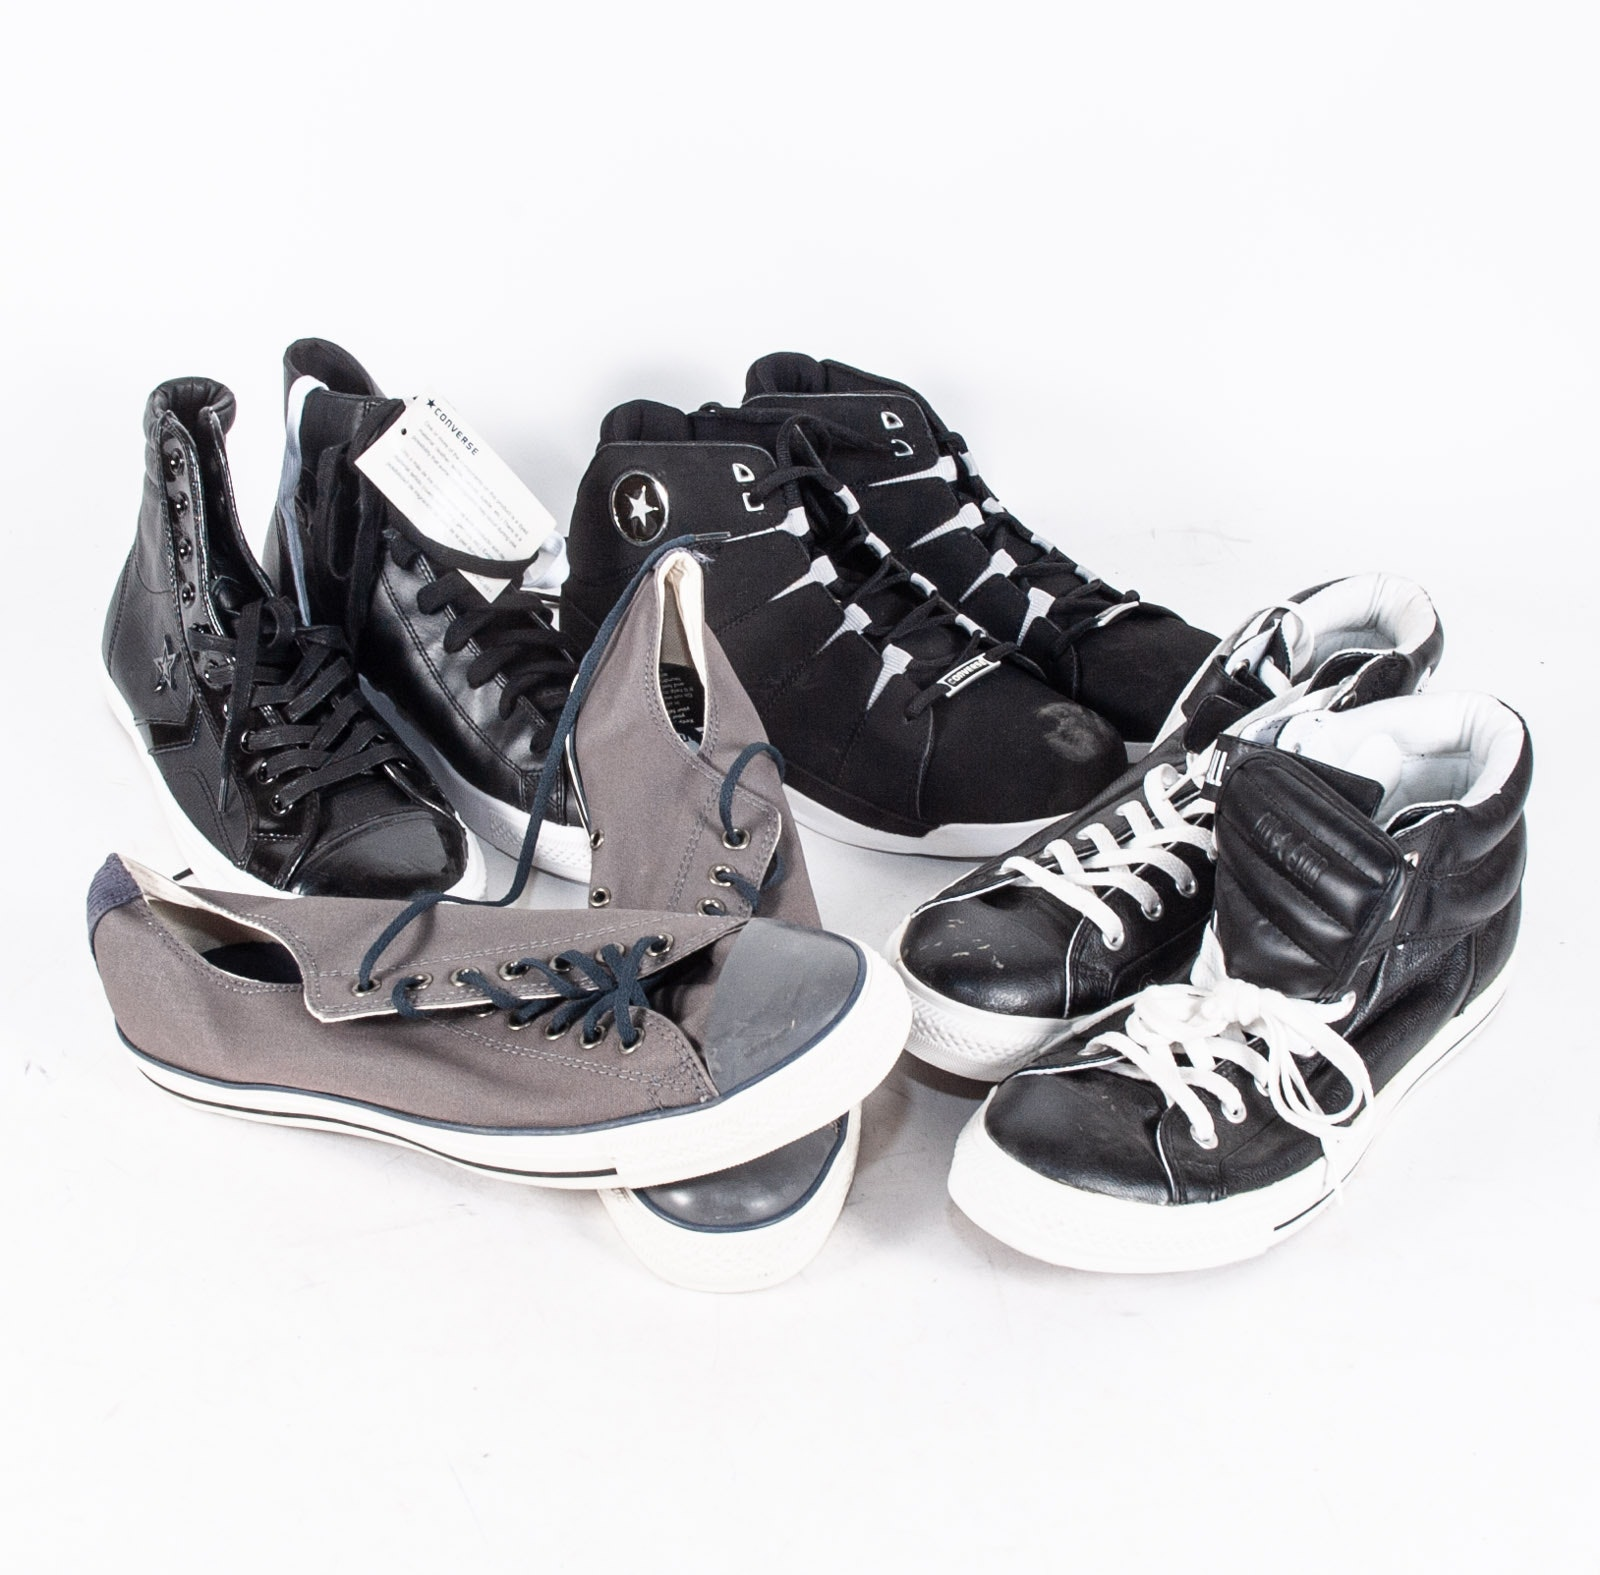 Converse Size 12 Sneakers